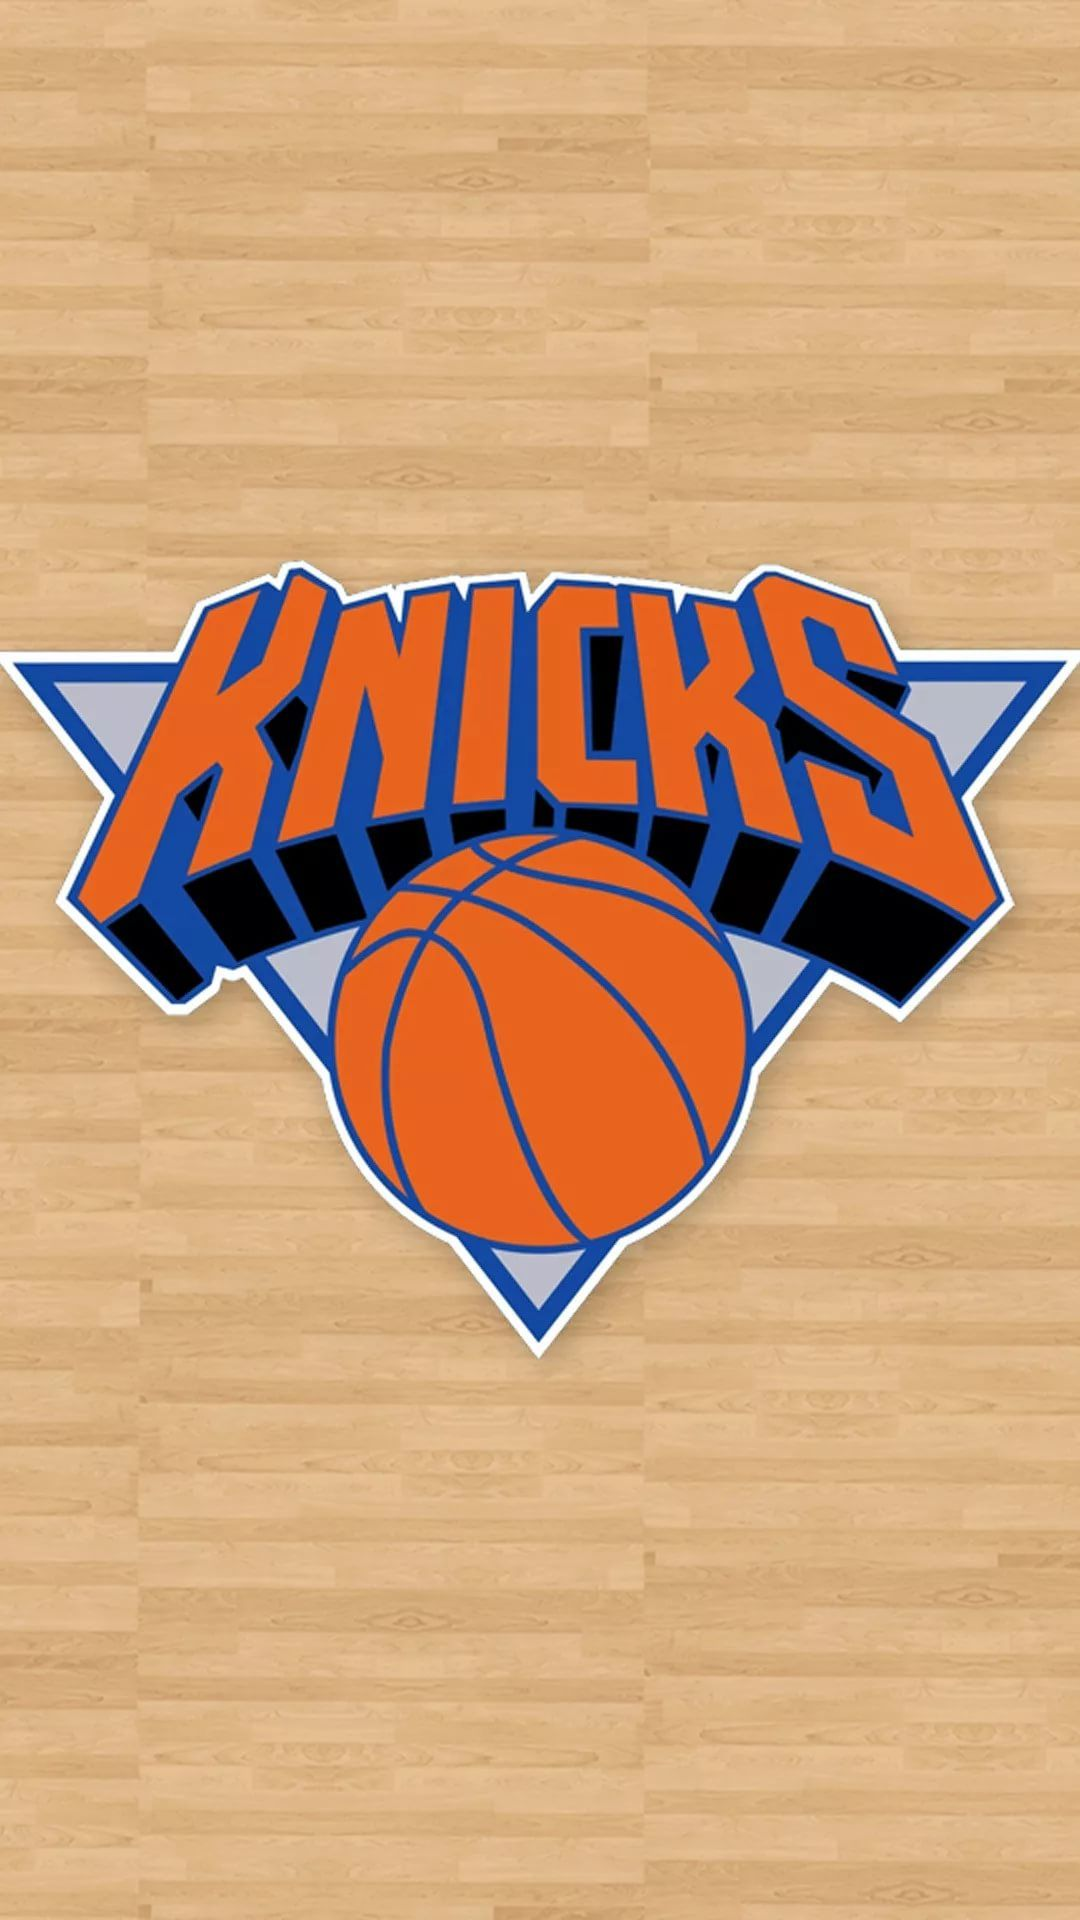 10 New York Knicks Iphone Wallpapers Wallpaperboat